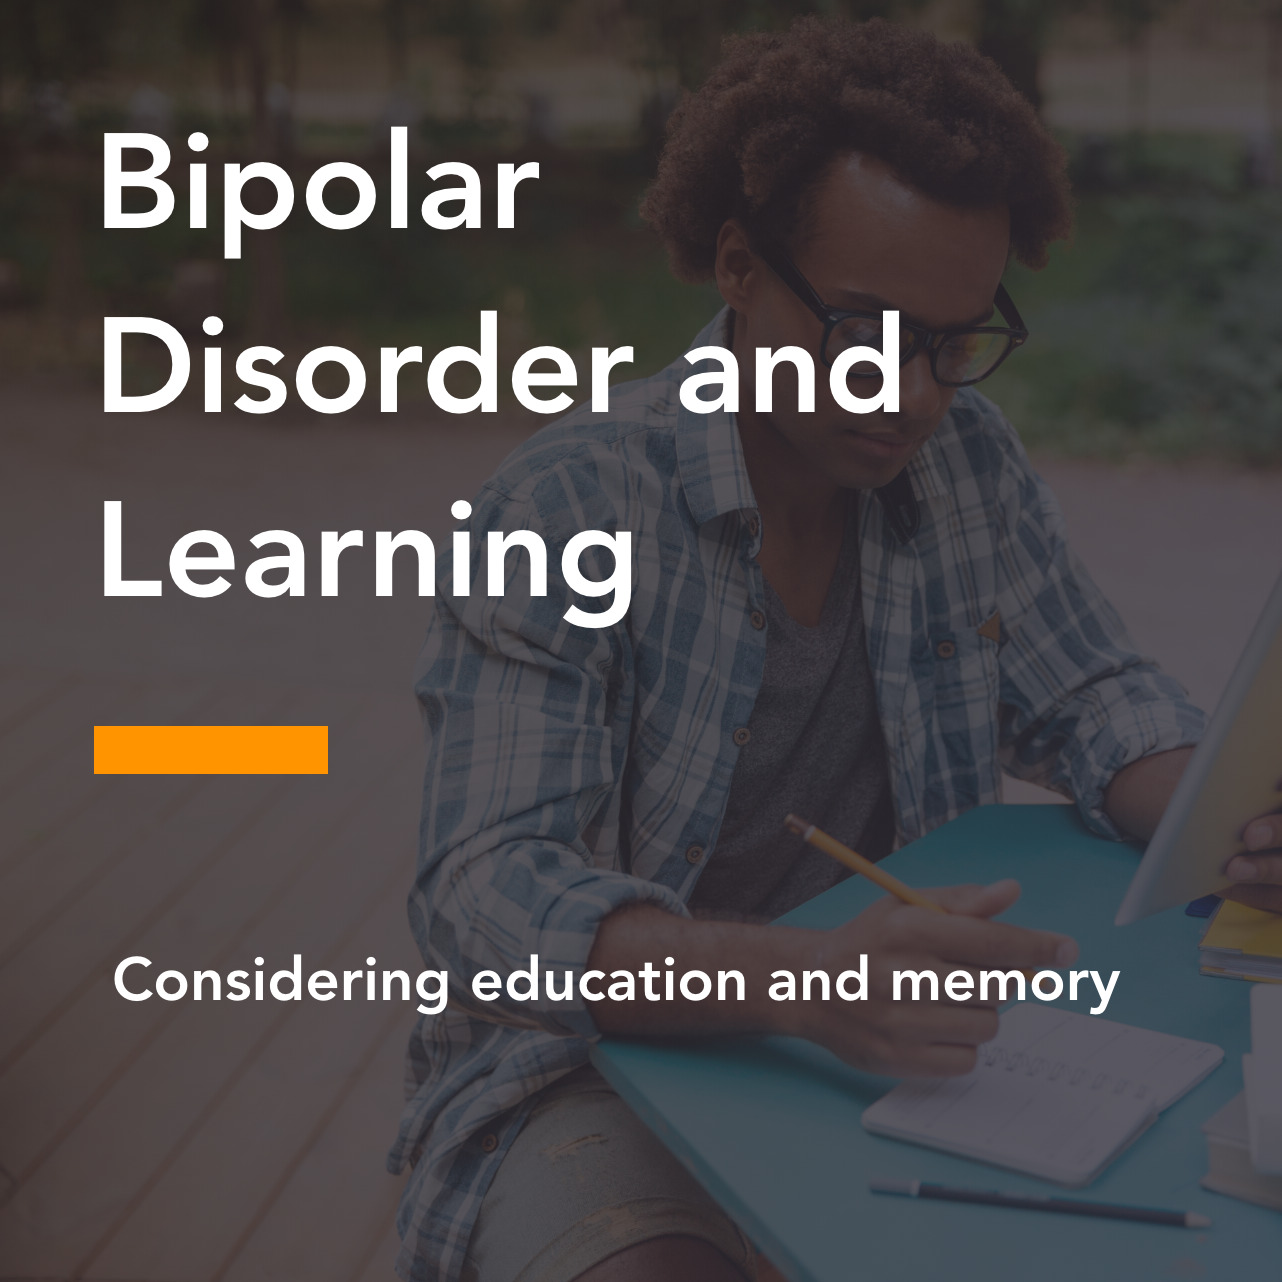 Bipolar Disorder and Learning: Considering education and memory